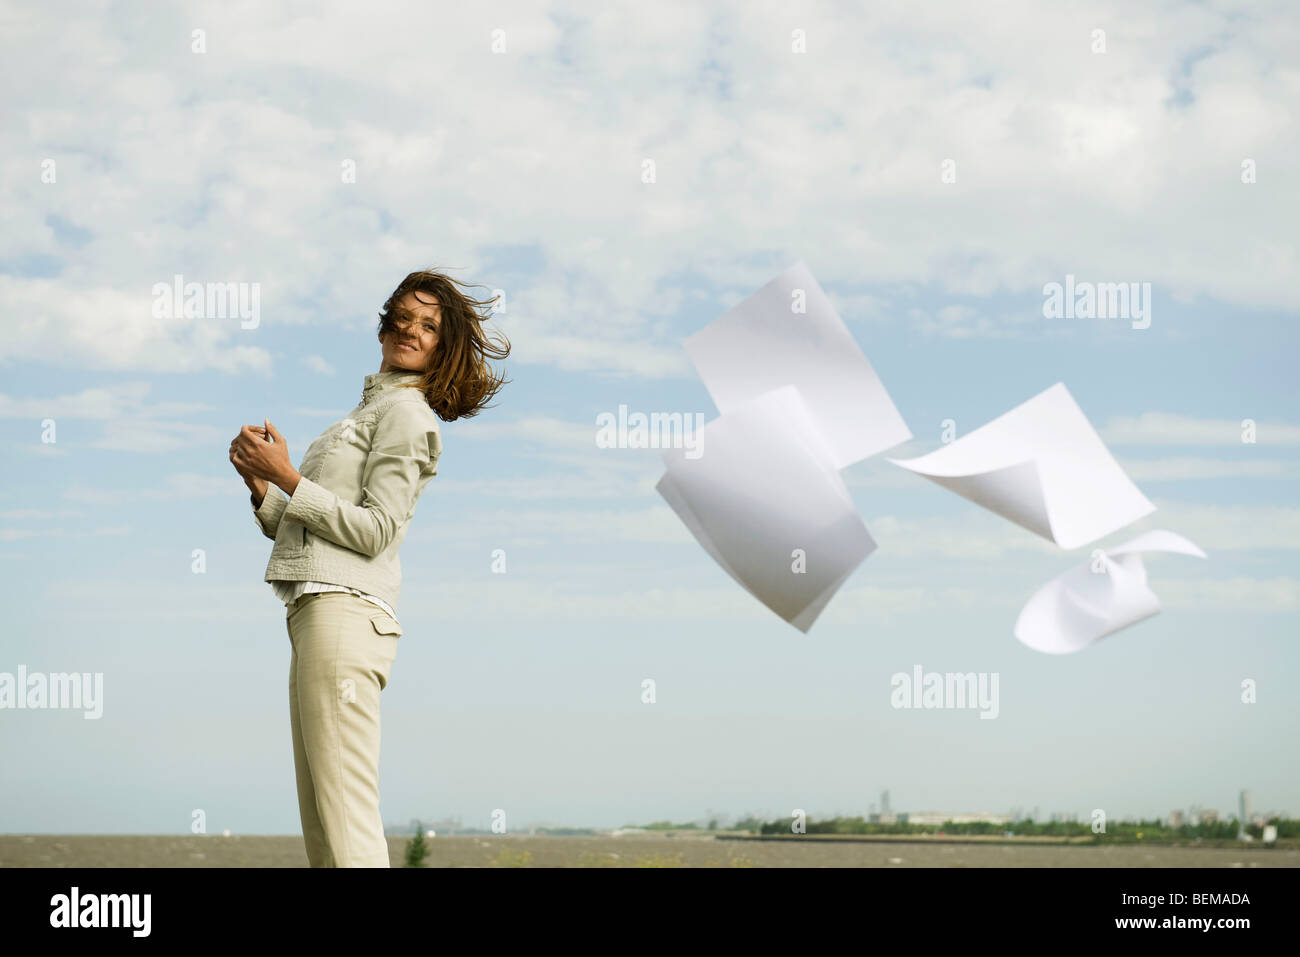 Woman outdoors smiling, watching documents caught in wind fly away - Stock Image